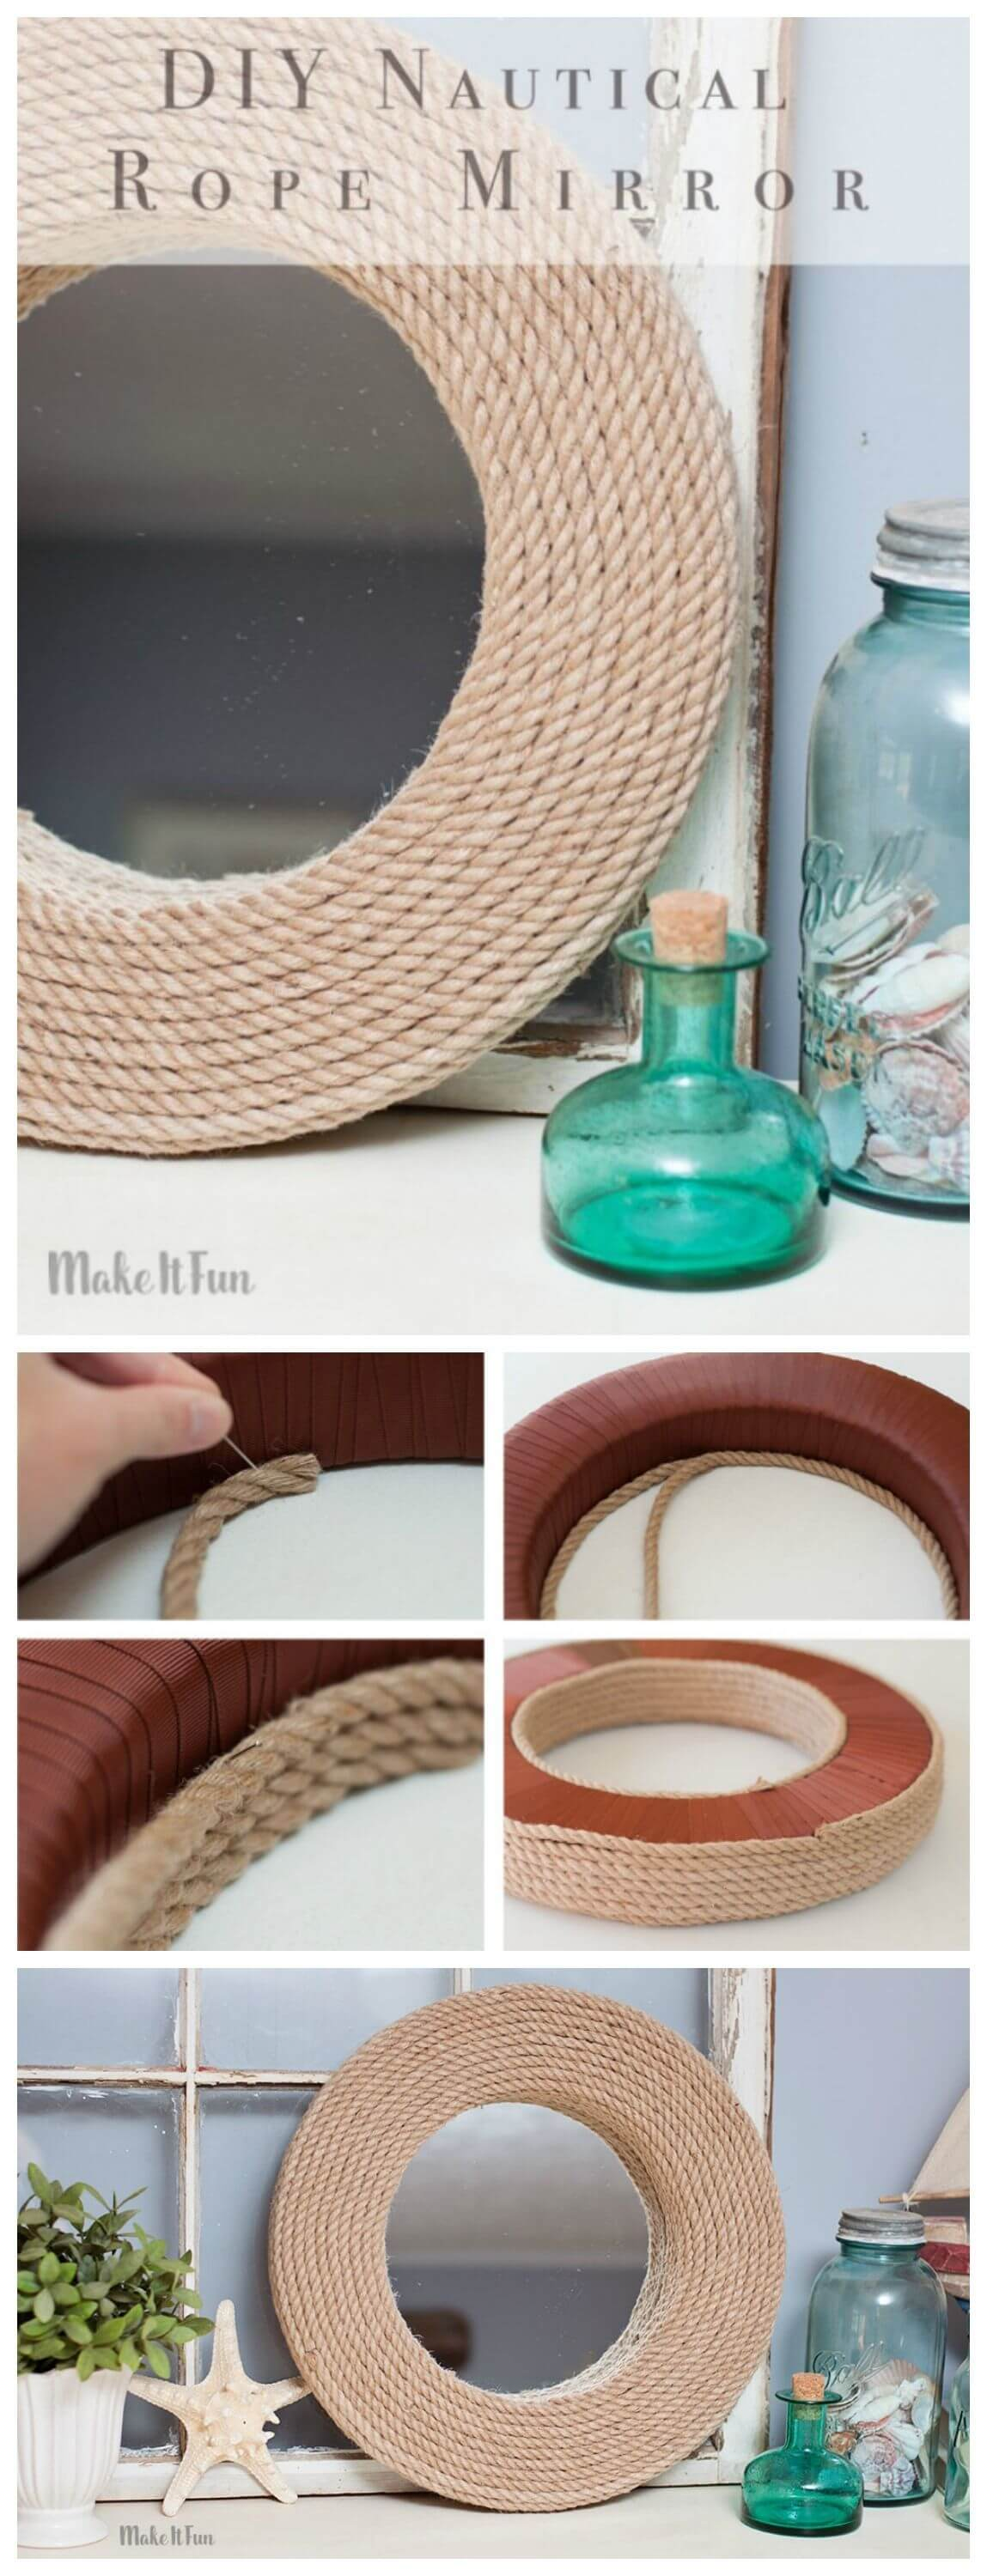 Upcycle an Old Mirror with Rope